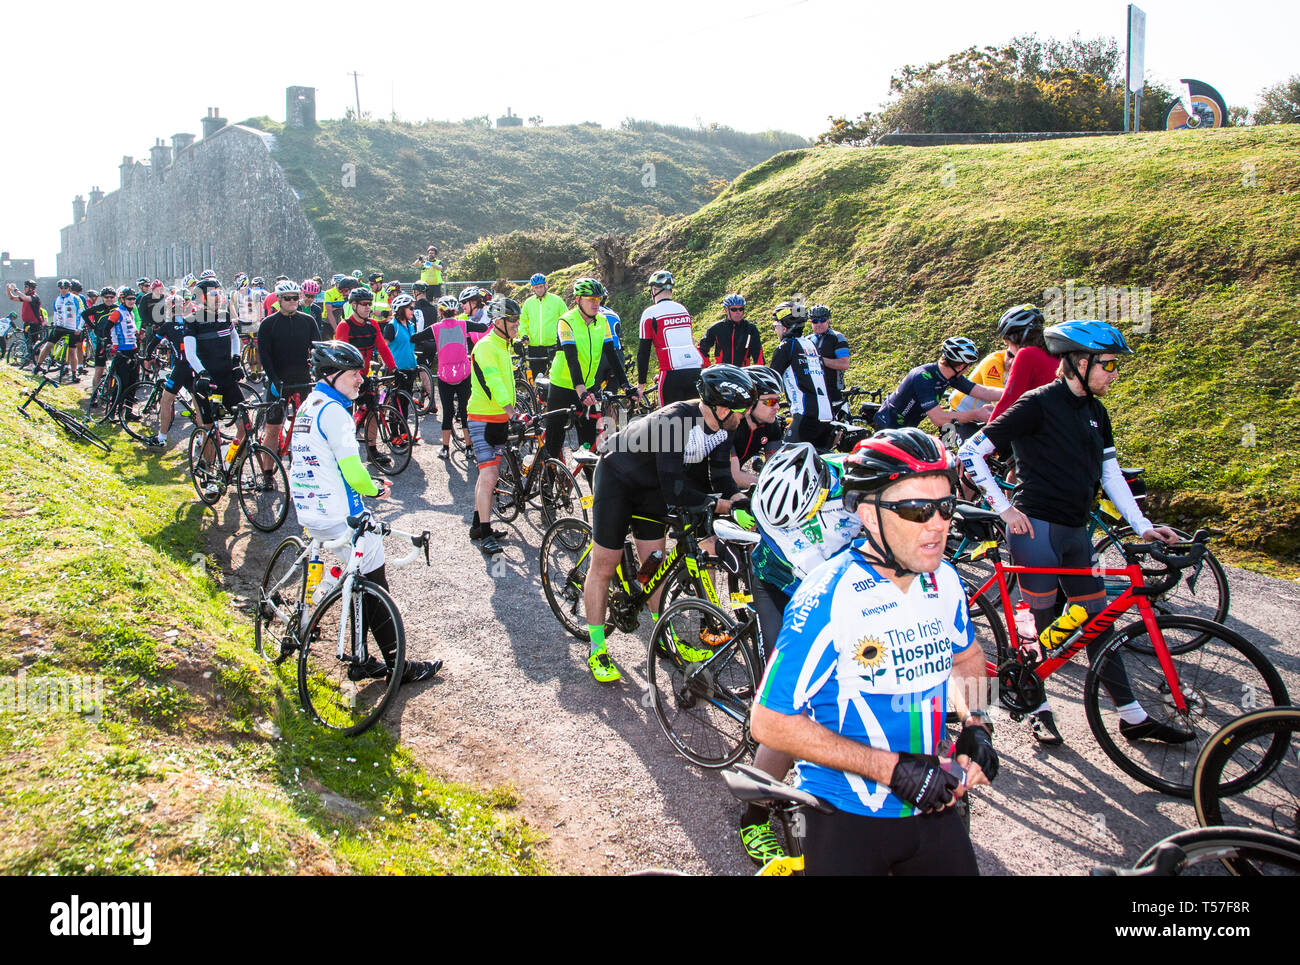 Crosshaven, County Cork, Ireland. 22nd April, 2019. /Cyclists preparing to set off on the Fort 2 Fort Charity Cycle at Camden Fort Meagher Crosshaven Co. Cork. The cycle is to help raise funds for the Mercy University Hospital Foundation, four Cork City and County Lions Clubs, and Camden Fort Meagher Restoration. Credit: David Creedon/Alamy Live News Stock Photo